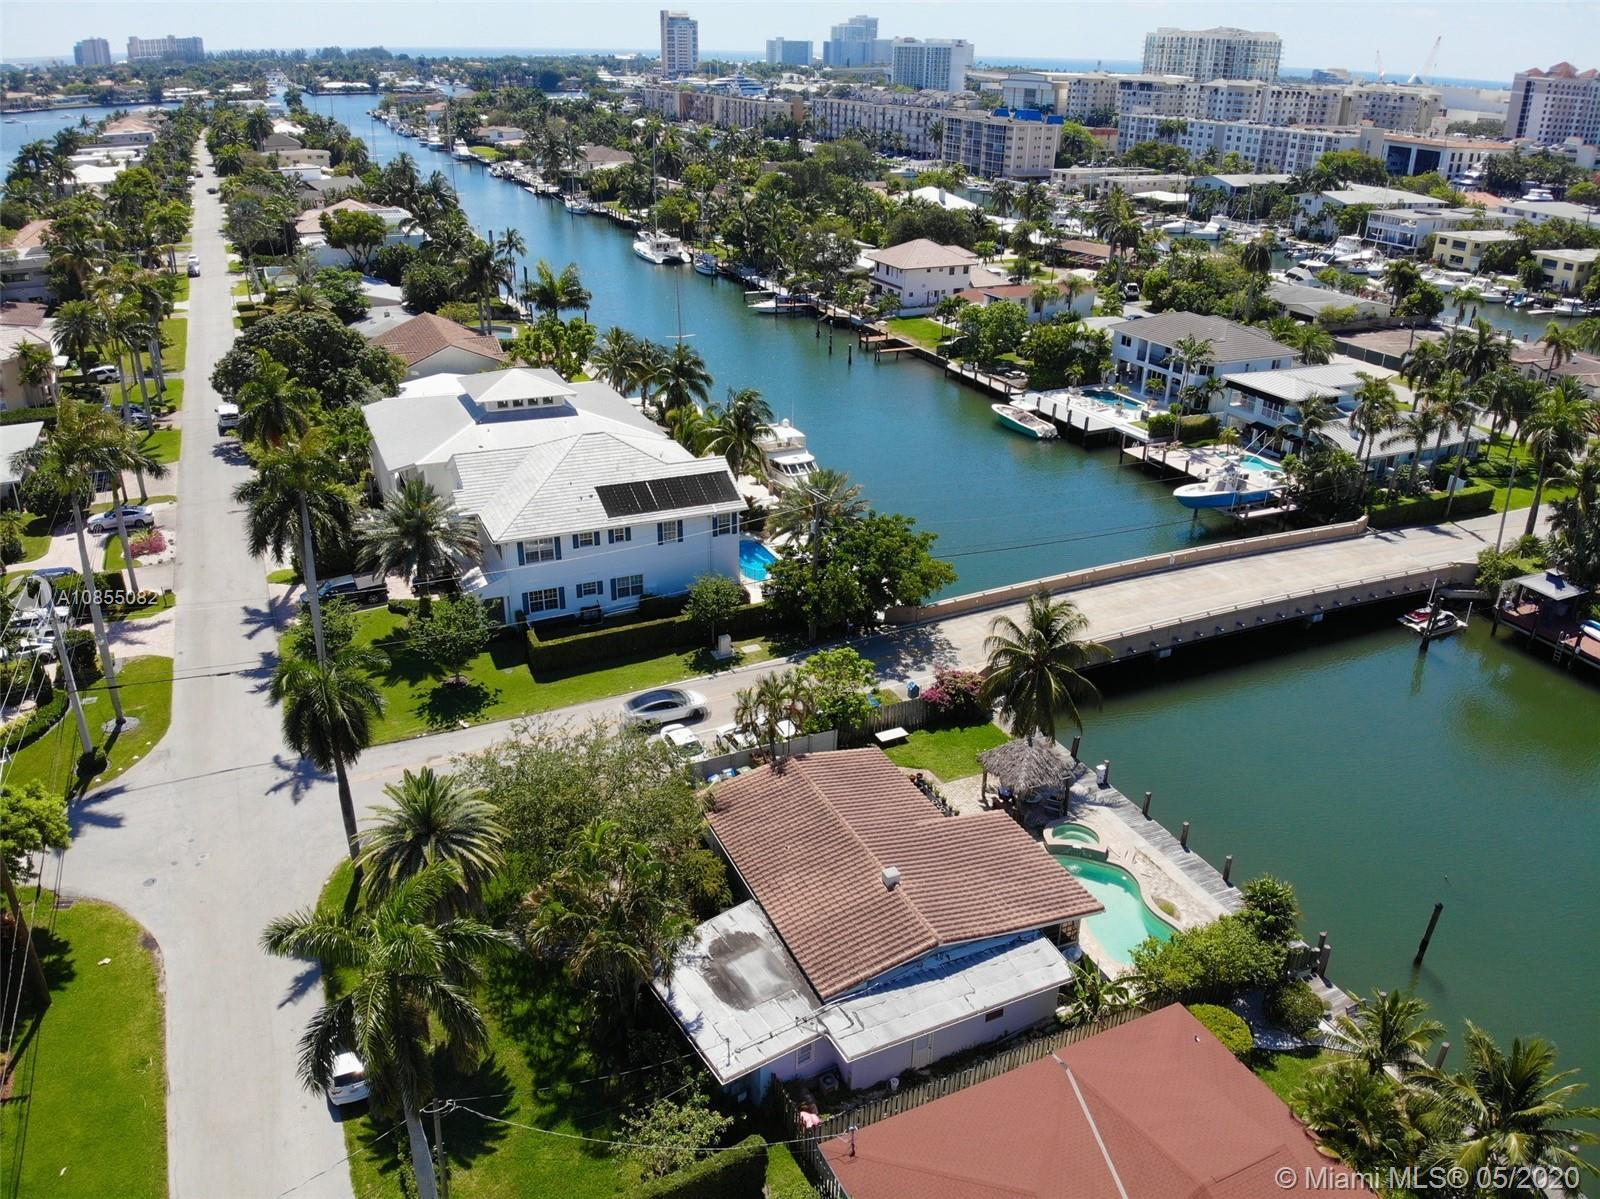 "BOATERS AND YACHT OWNERS TAKE NOTICE!! EXCELLENT OPPORTUNITY TO BUY THIS WATERFRONT RESIDENCE IN THE HEART OF LAUDERDALE HARBORS ON 80"" OF DEEP-WATER AND EITHER REMODEL OR CONSTRUCT A NEW HOME. EXTREMELY CLOSE OCEAN ACCESS AND LOCATED ON A WIDE CANAL CAN ACCOMMODATE A CATAMARAN OR SEVERAL BOATS STERN TO DOCK FOR YOUR BAHAMIAN GETAWAY. ONLY ONE CANAL AWAY FROM THE ENTRY TO PORT EVERGLADES AND OCEAN. ENJOY THE SOUTHERN EXPOSURE POOL & SPA. ROOF NEW IN 2006, HEAT REFLECTIVE TILES AND INSULATED. UPDATED INTERIOR 2 MASTER SUITES. OPEN FLOOR PLAN. WALK TO LOCAL PUBS, SHOPS AND FINE DINING. THE EXISTING 2 BEDROOM/ 3 BATHS 1917 SQ. CORNER POOL HOME ON SITE COULD FEASIBLY BE RENOVATED!! EASY TO SHOW."